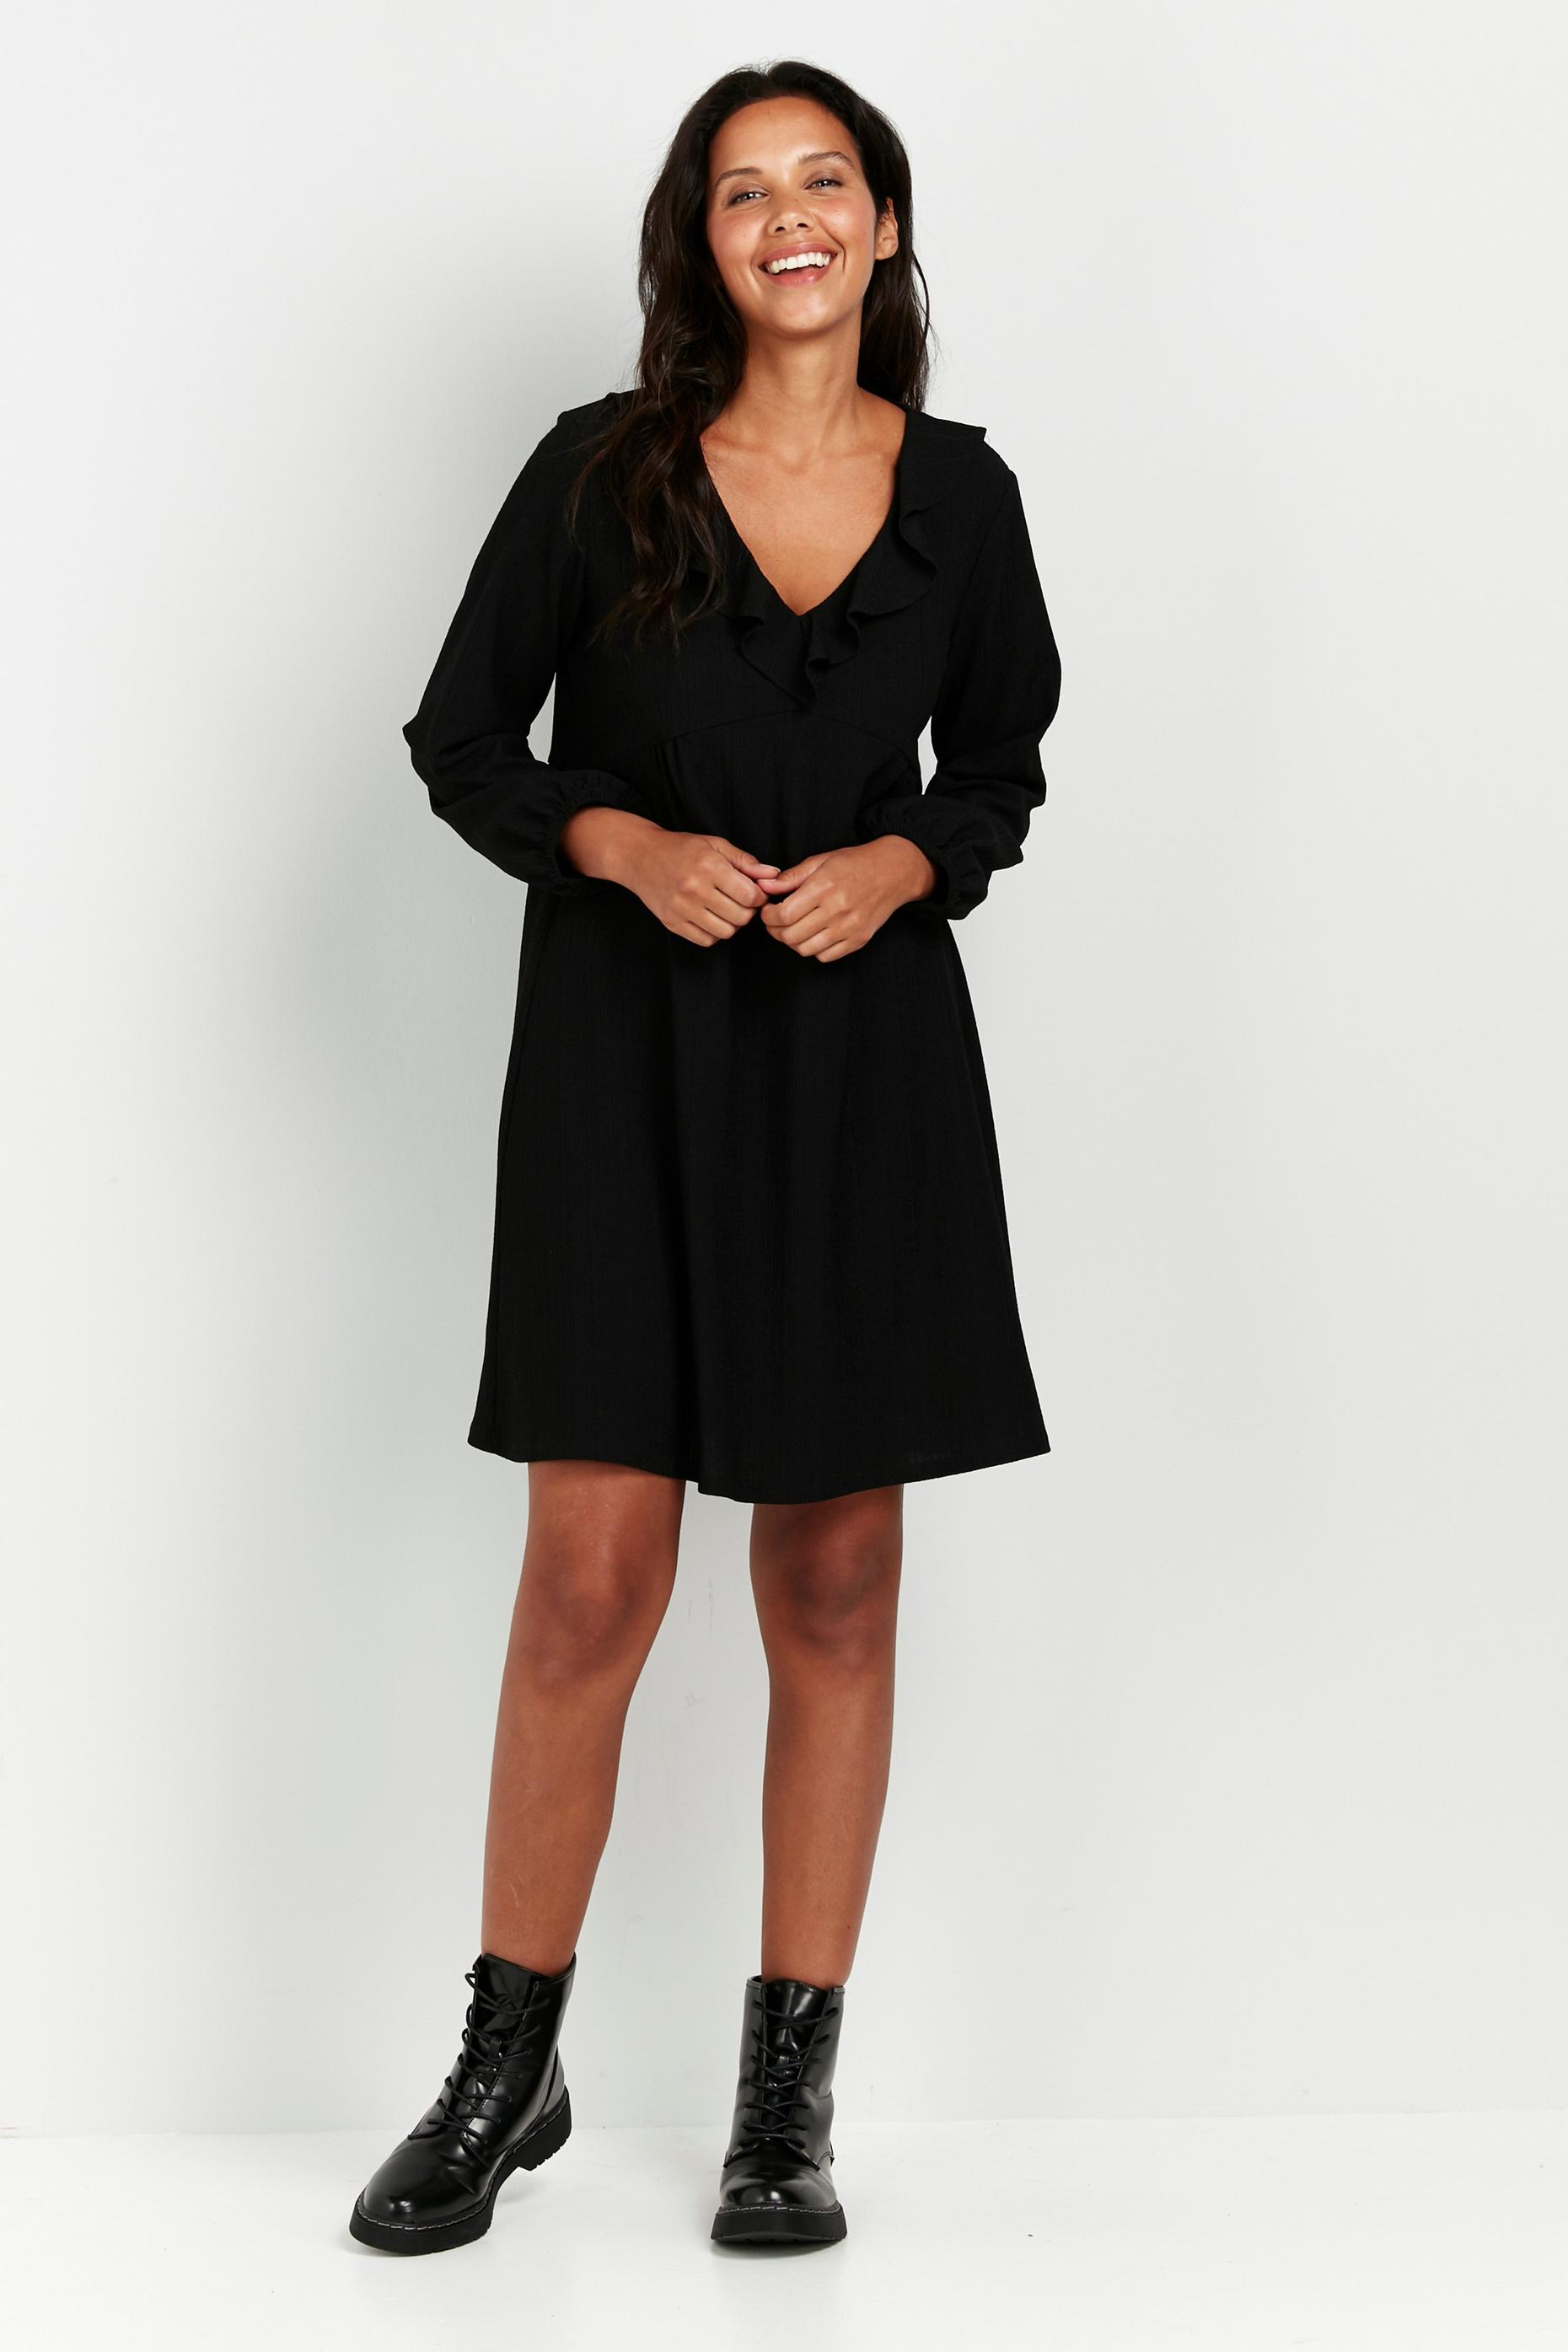 PETITE Black Puff Sleeve Frill Detail Dress